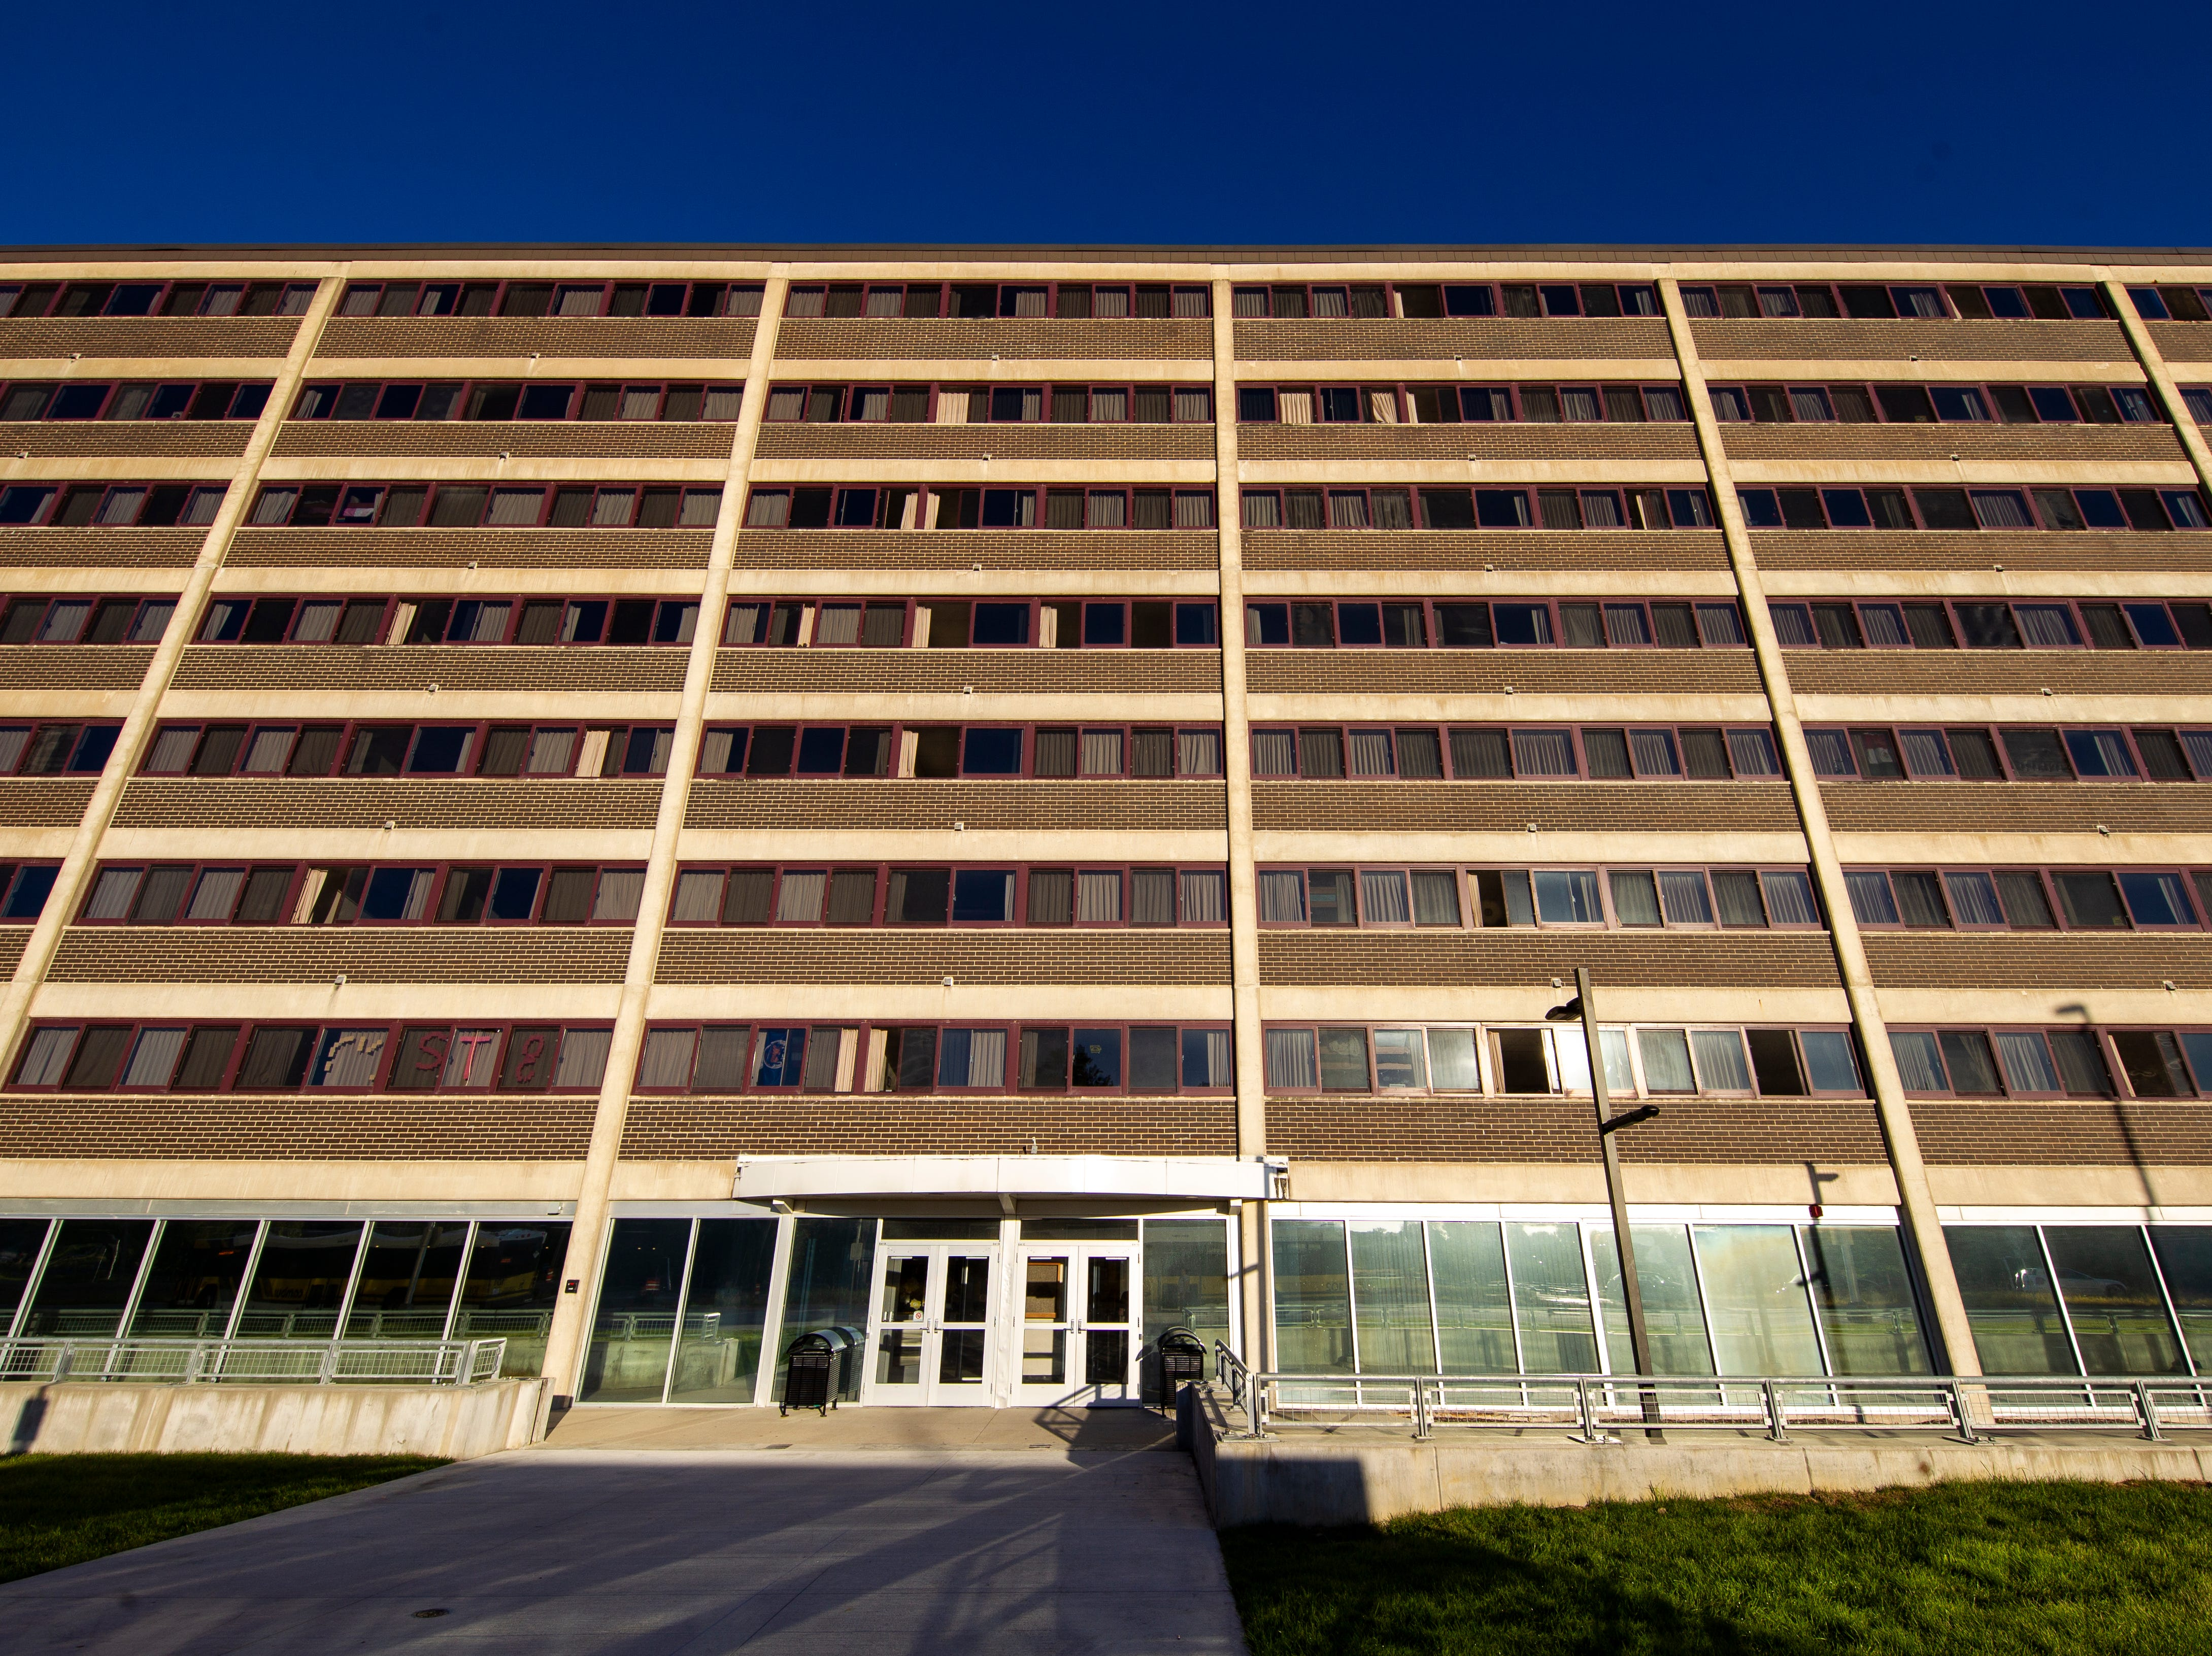 Mayflower Residence Hall is seen on Sunday, Sept. 23, 2018, along Dubuque Street in Iowa City. Mayflower was completed in 1966, housing 1,032.